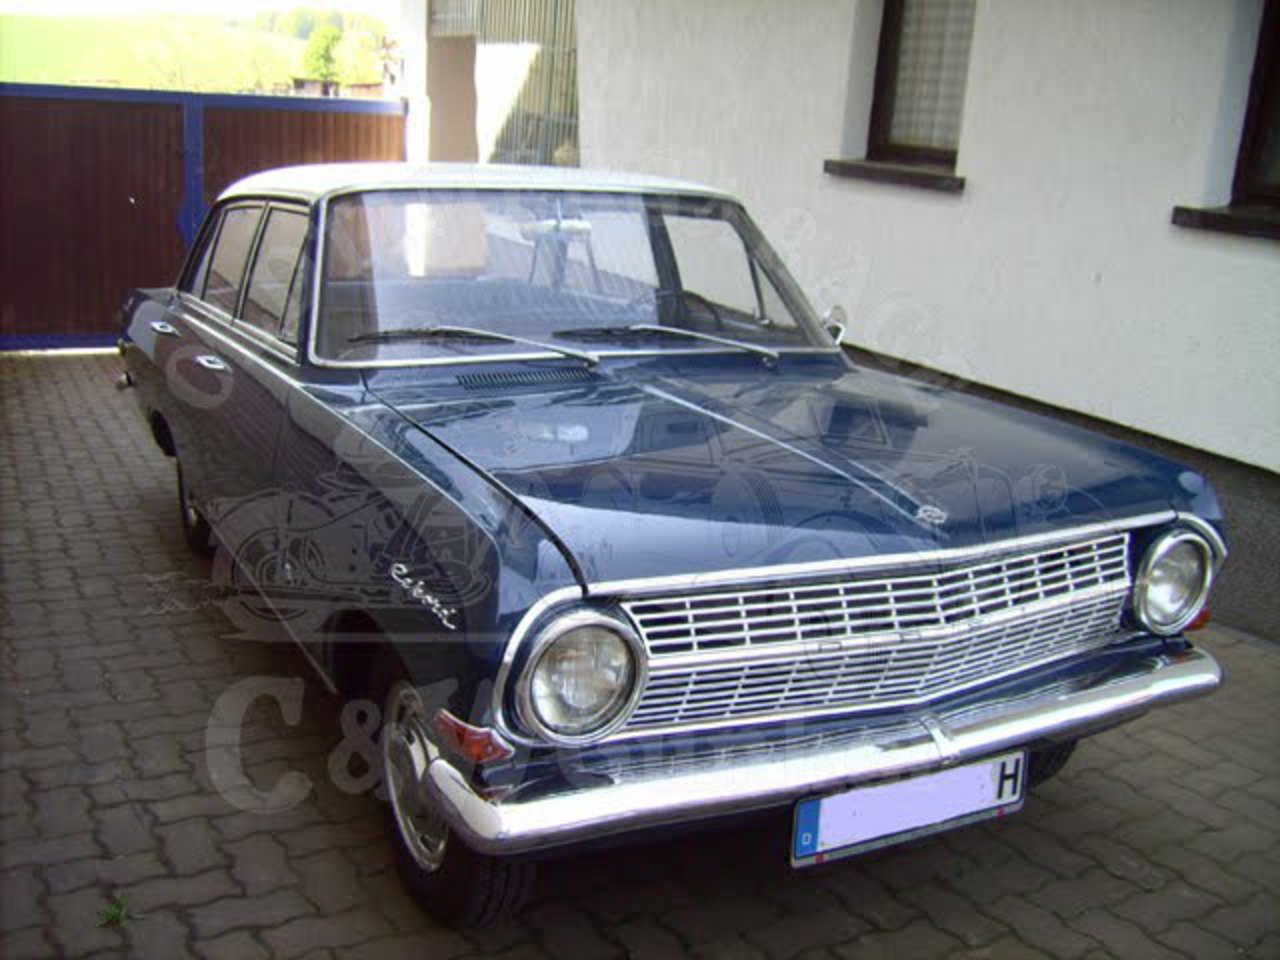 Opel Olympia Rekord from Germany